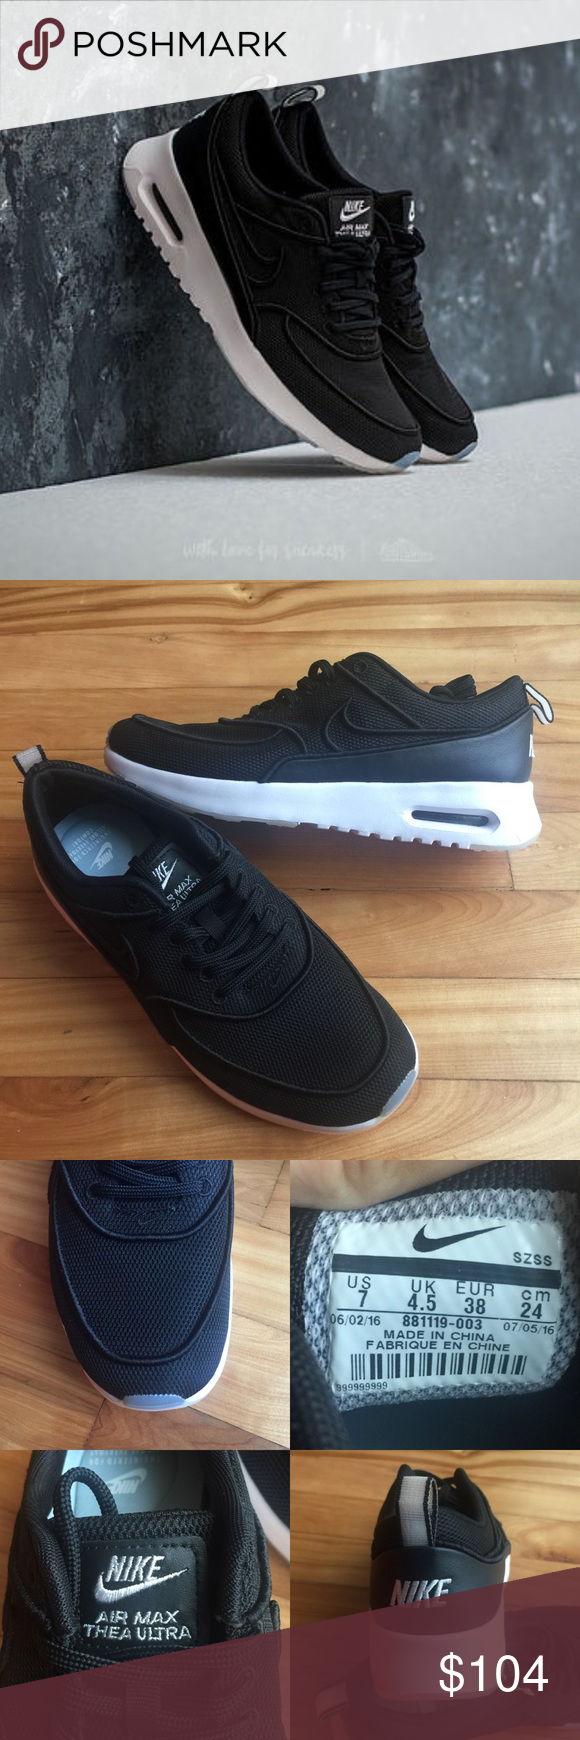 the best attitude b5388 be336 🌧New🌧 NIKE black Air Max Thea Ultra SI ~ 9.5 brand new no original box  size 9.5 white black comes from smoke free home guaranteed 100% authentic  A1700043 ...